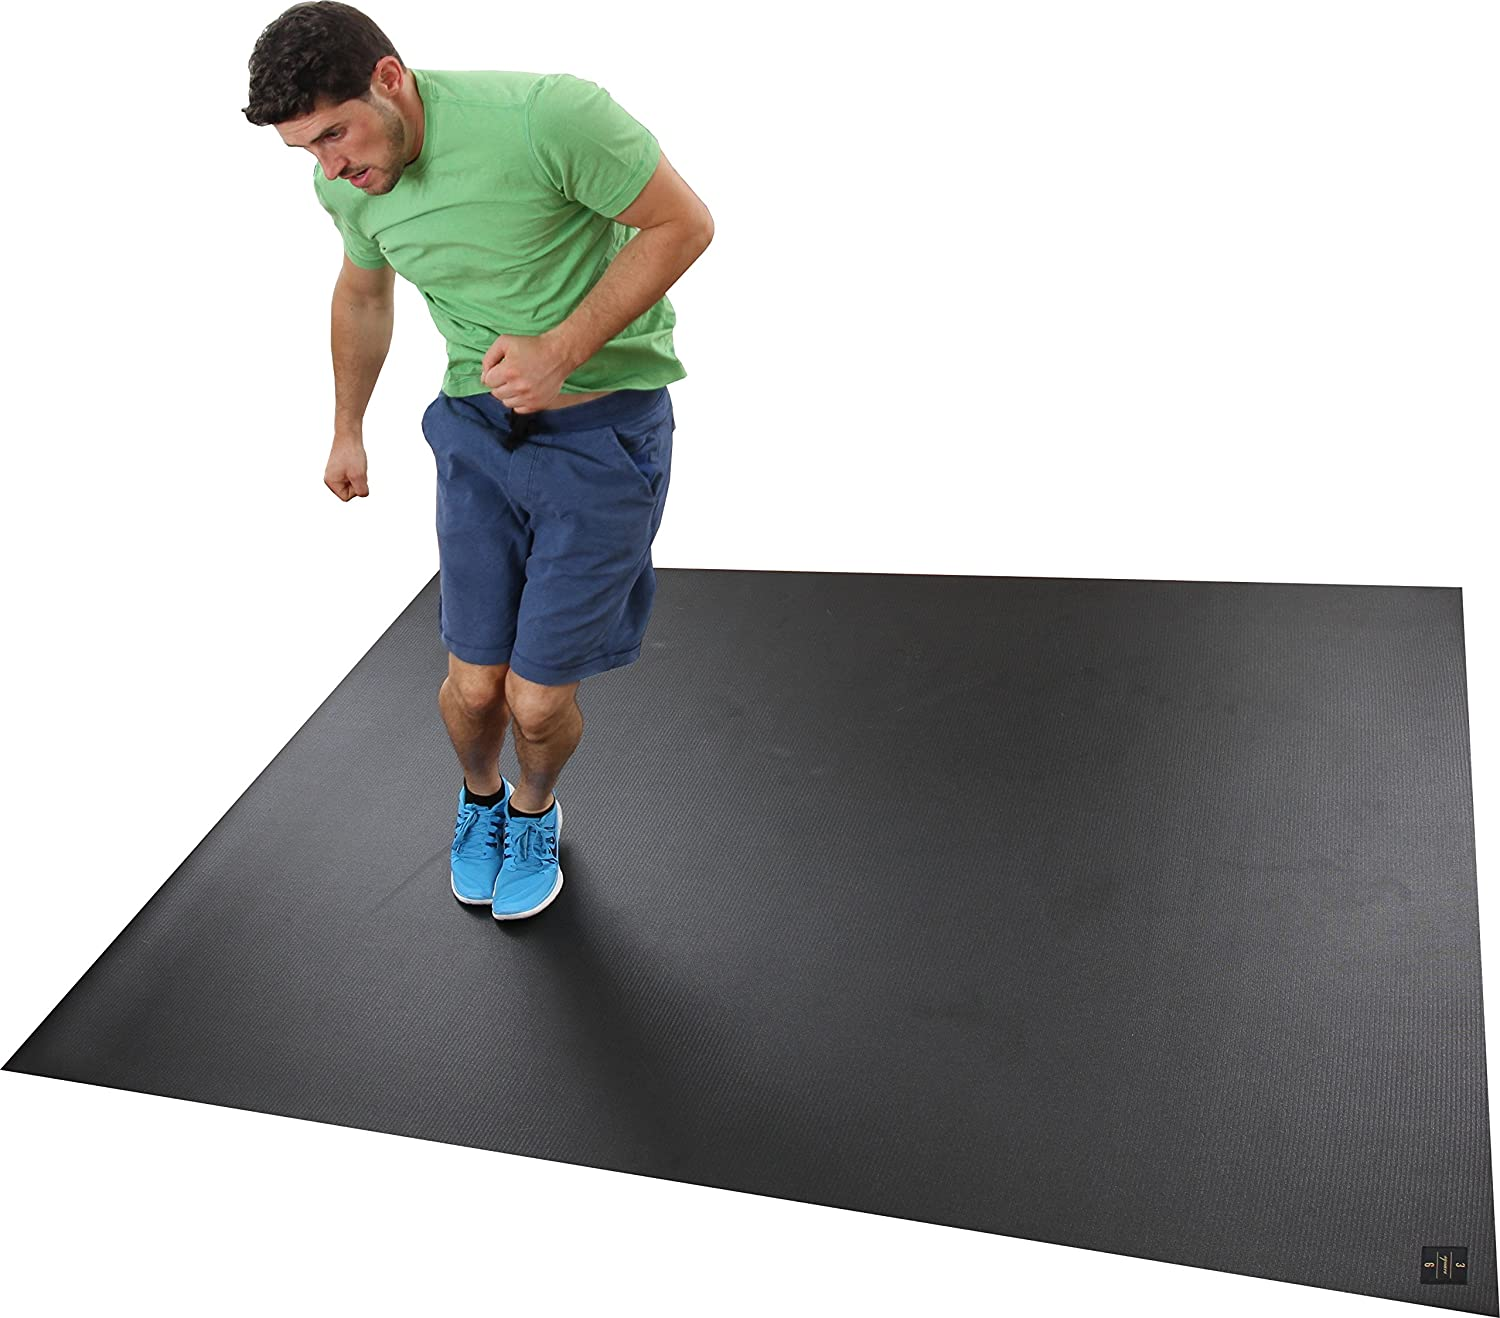 yoga by workout oversize pogamat mat eric kickstarter large yo exercise and projects landis durable original mats